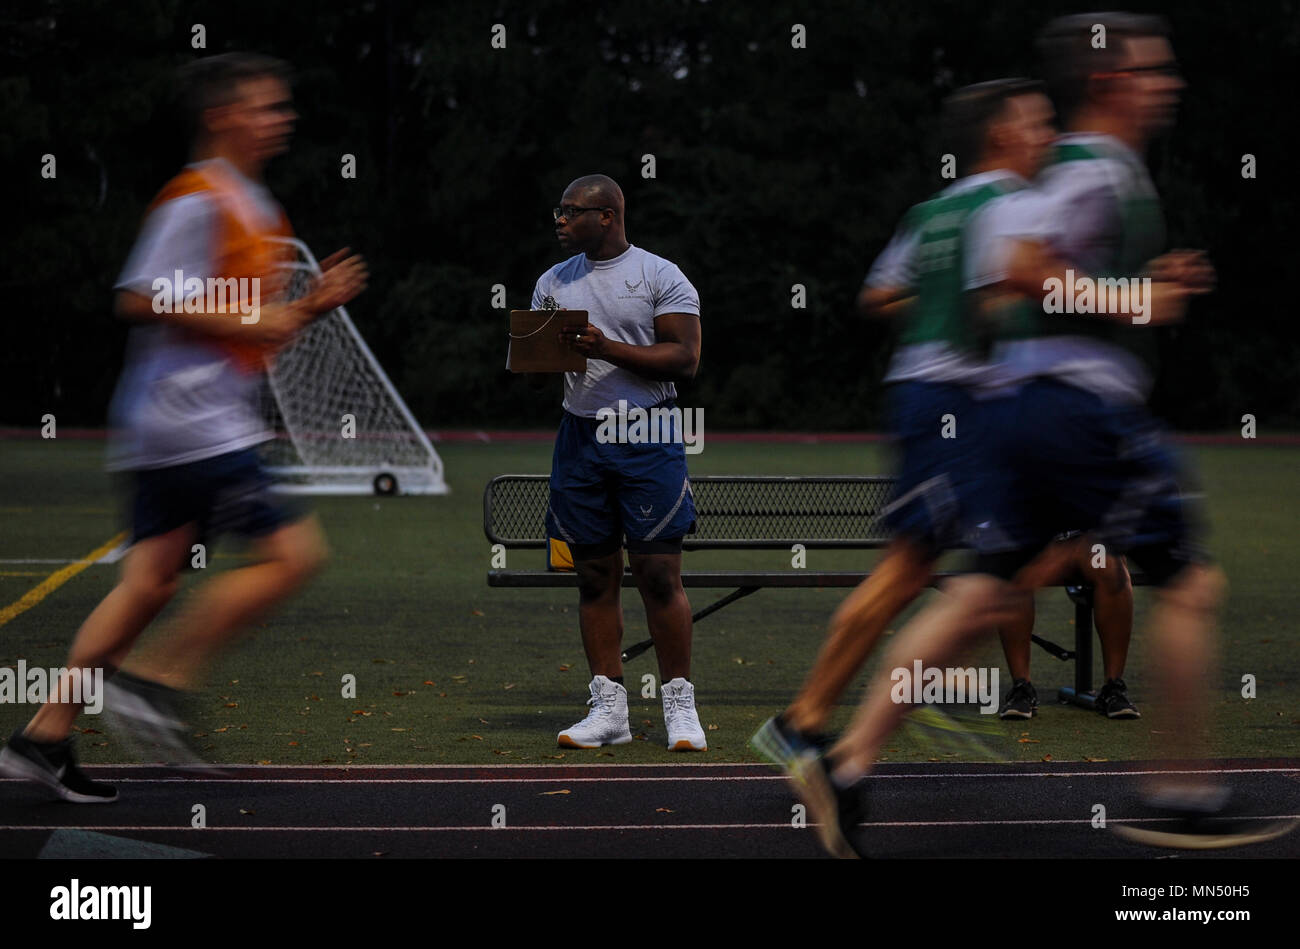 Senior Airman David Lawal, an augmentee for the Fitness Assessment